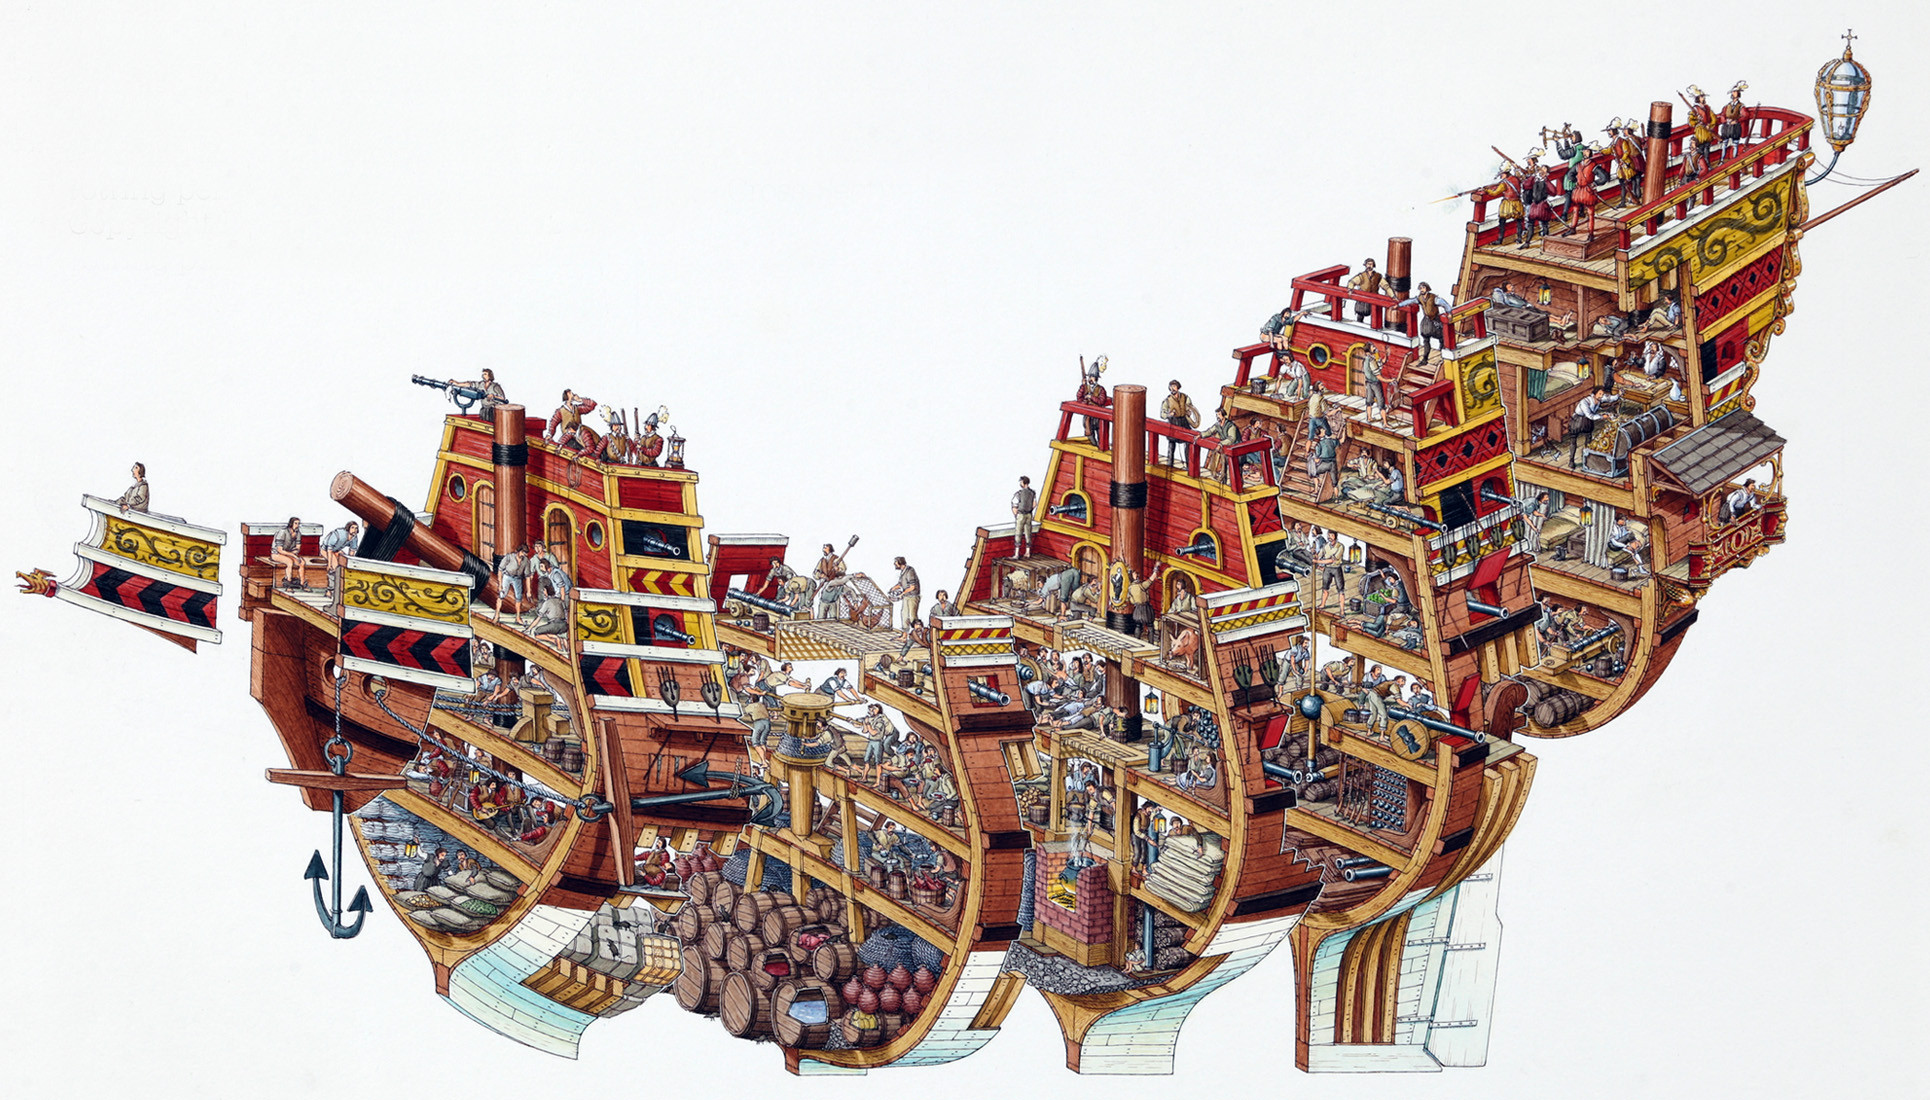 Pirates Doubtfulsea Ship Diagram With Labels Google Search Pirate Ships Hidxztr